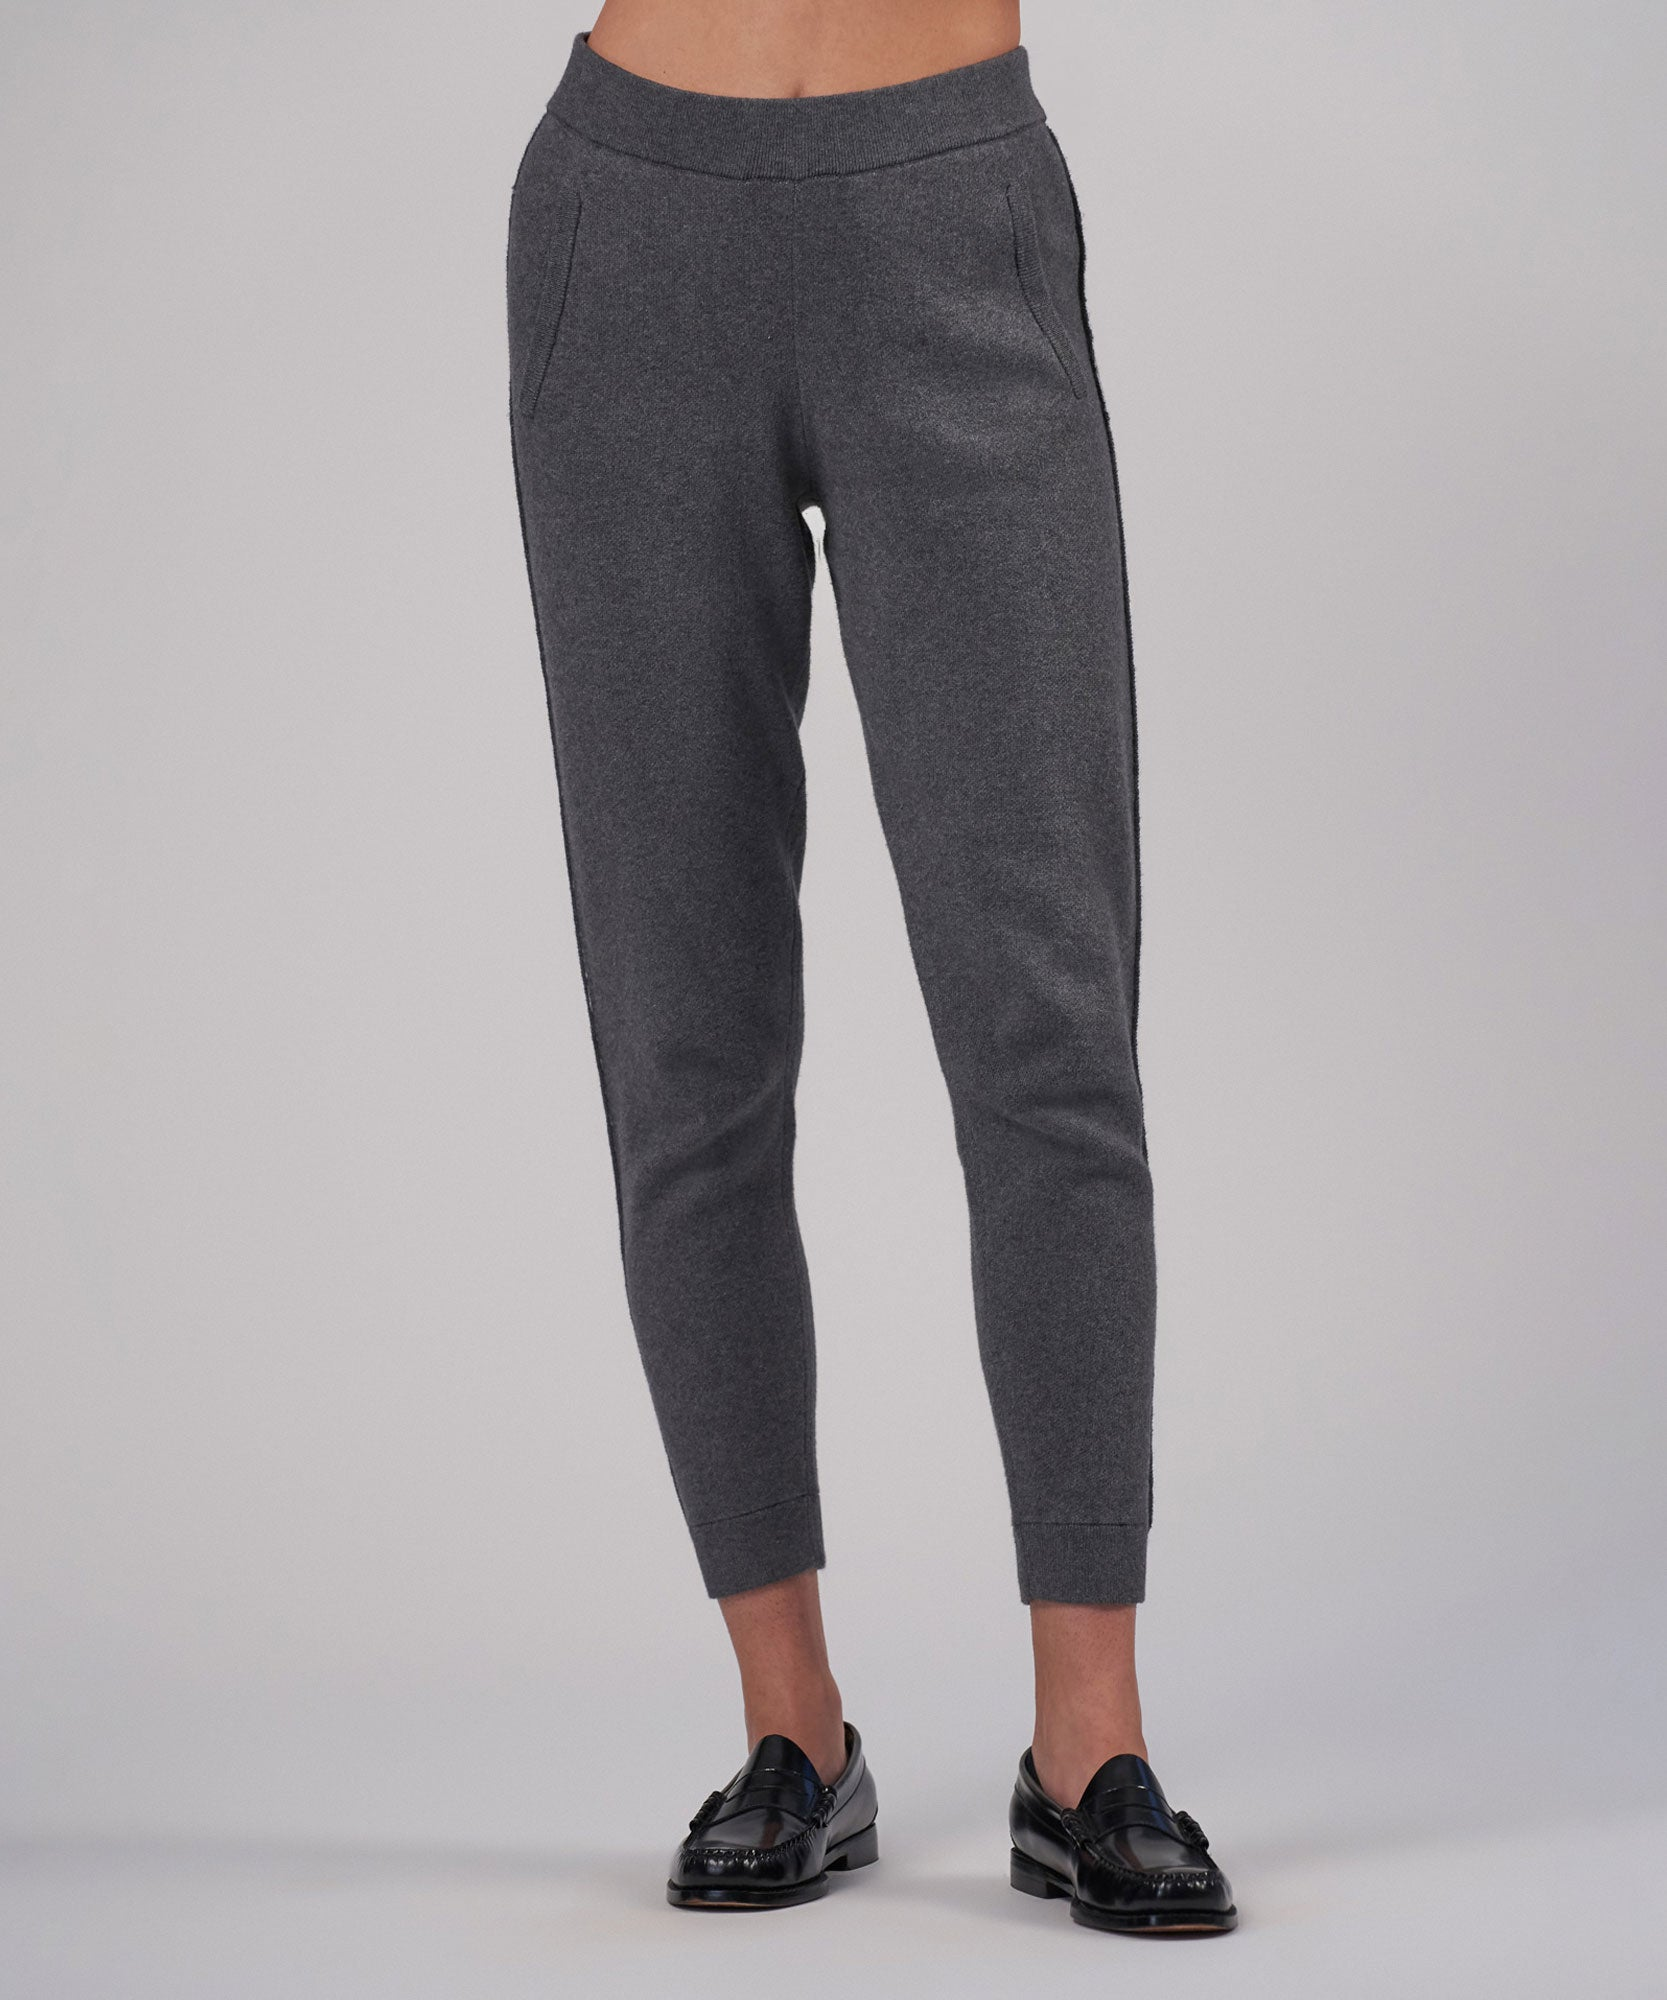 Heather Charcoal Cotton Cashmere Sweater Pant - Women's Pants by ATM Anthony Thomas Melillo